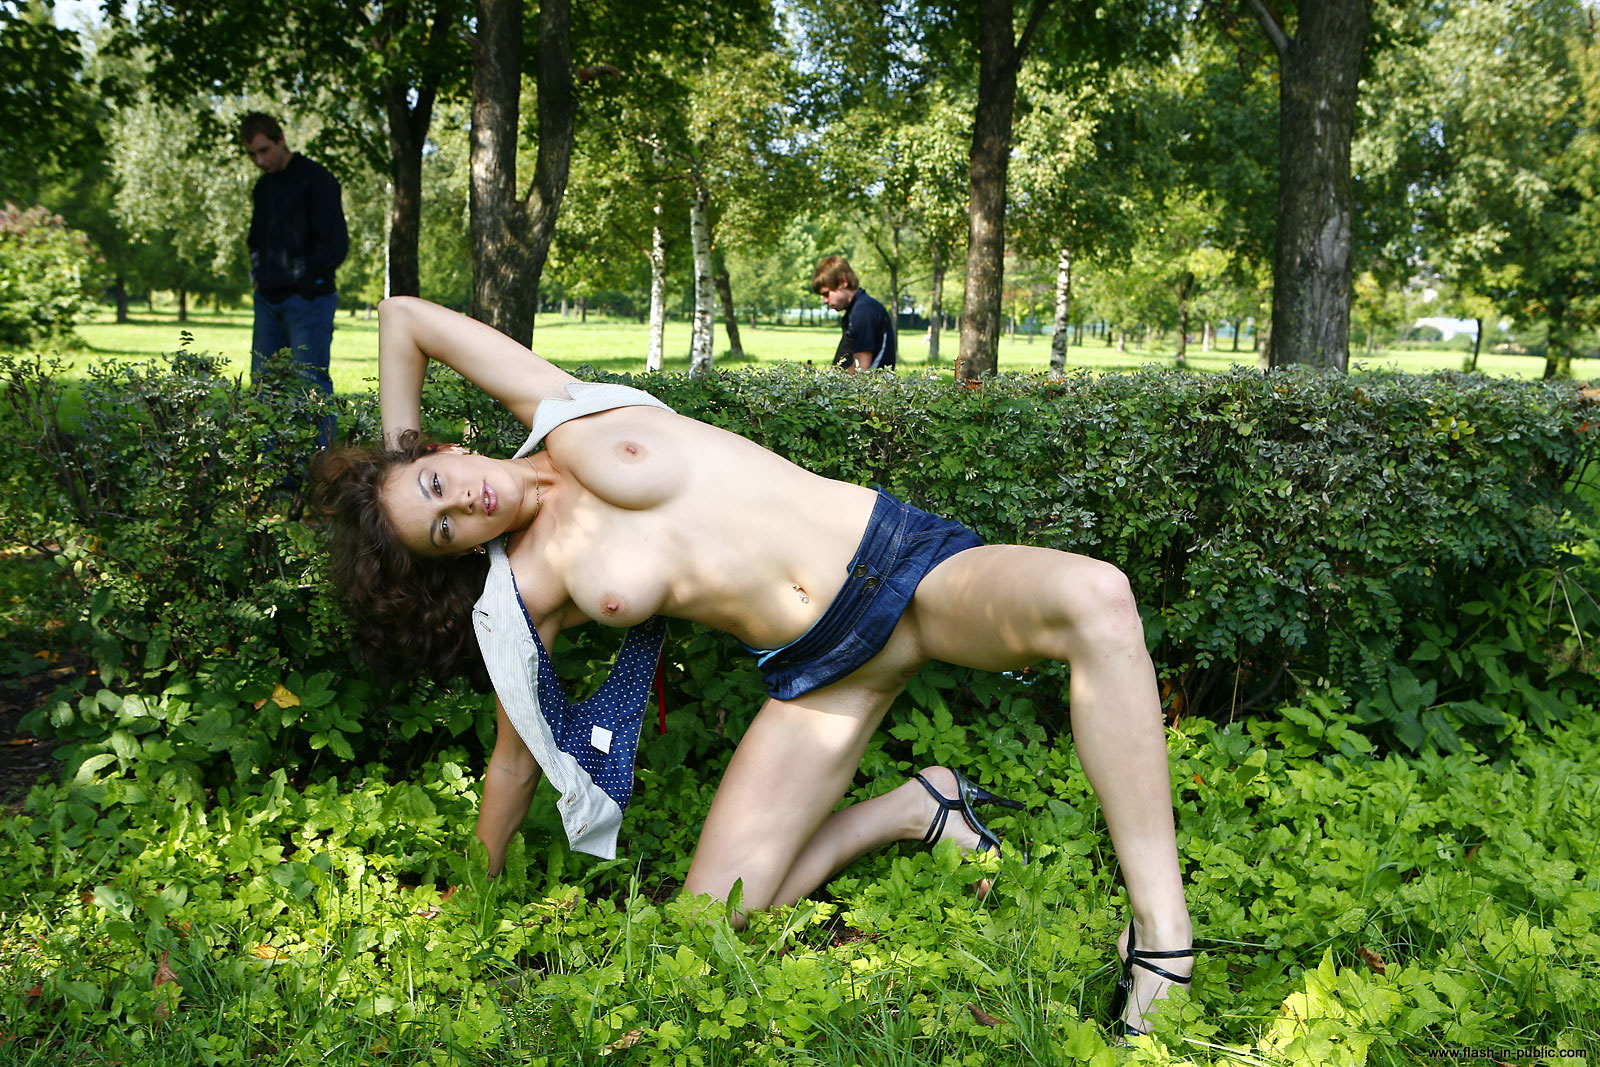 marianna-h-nude-park-flash-in-public-16